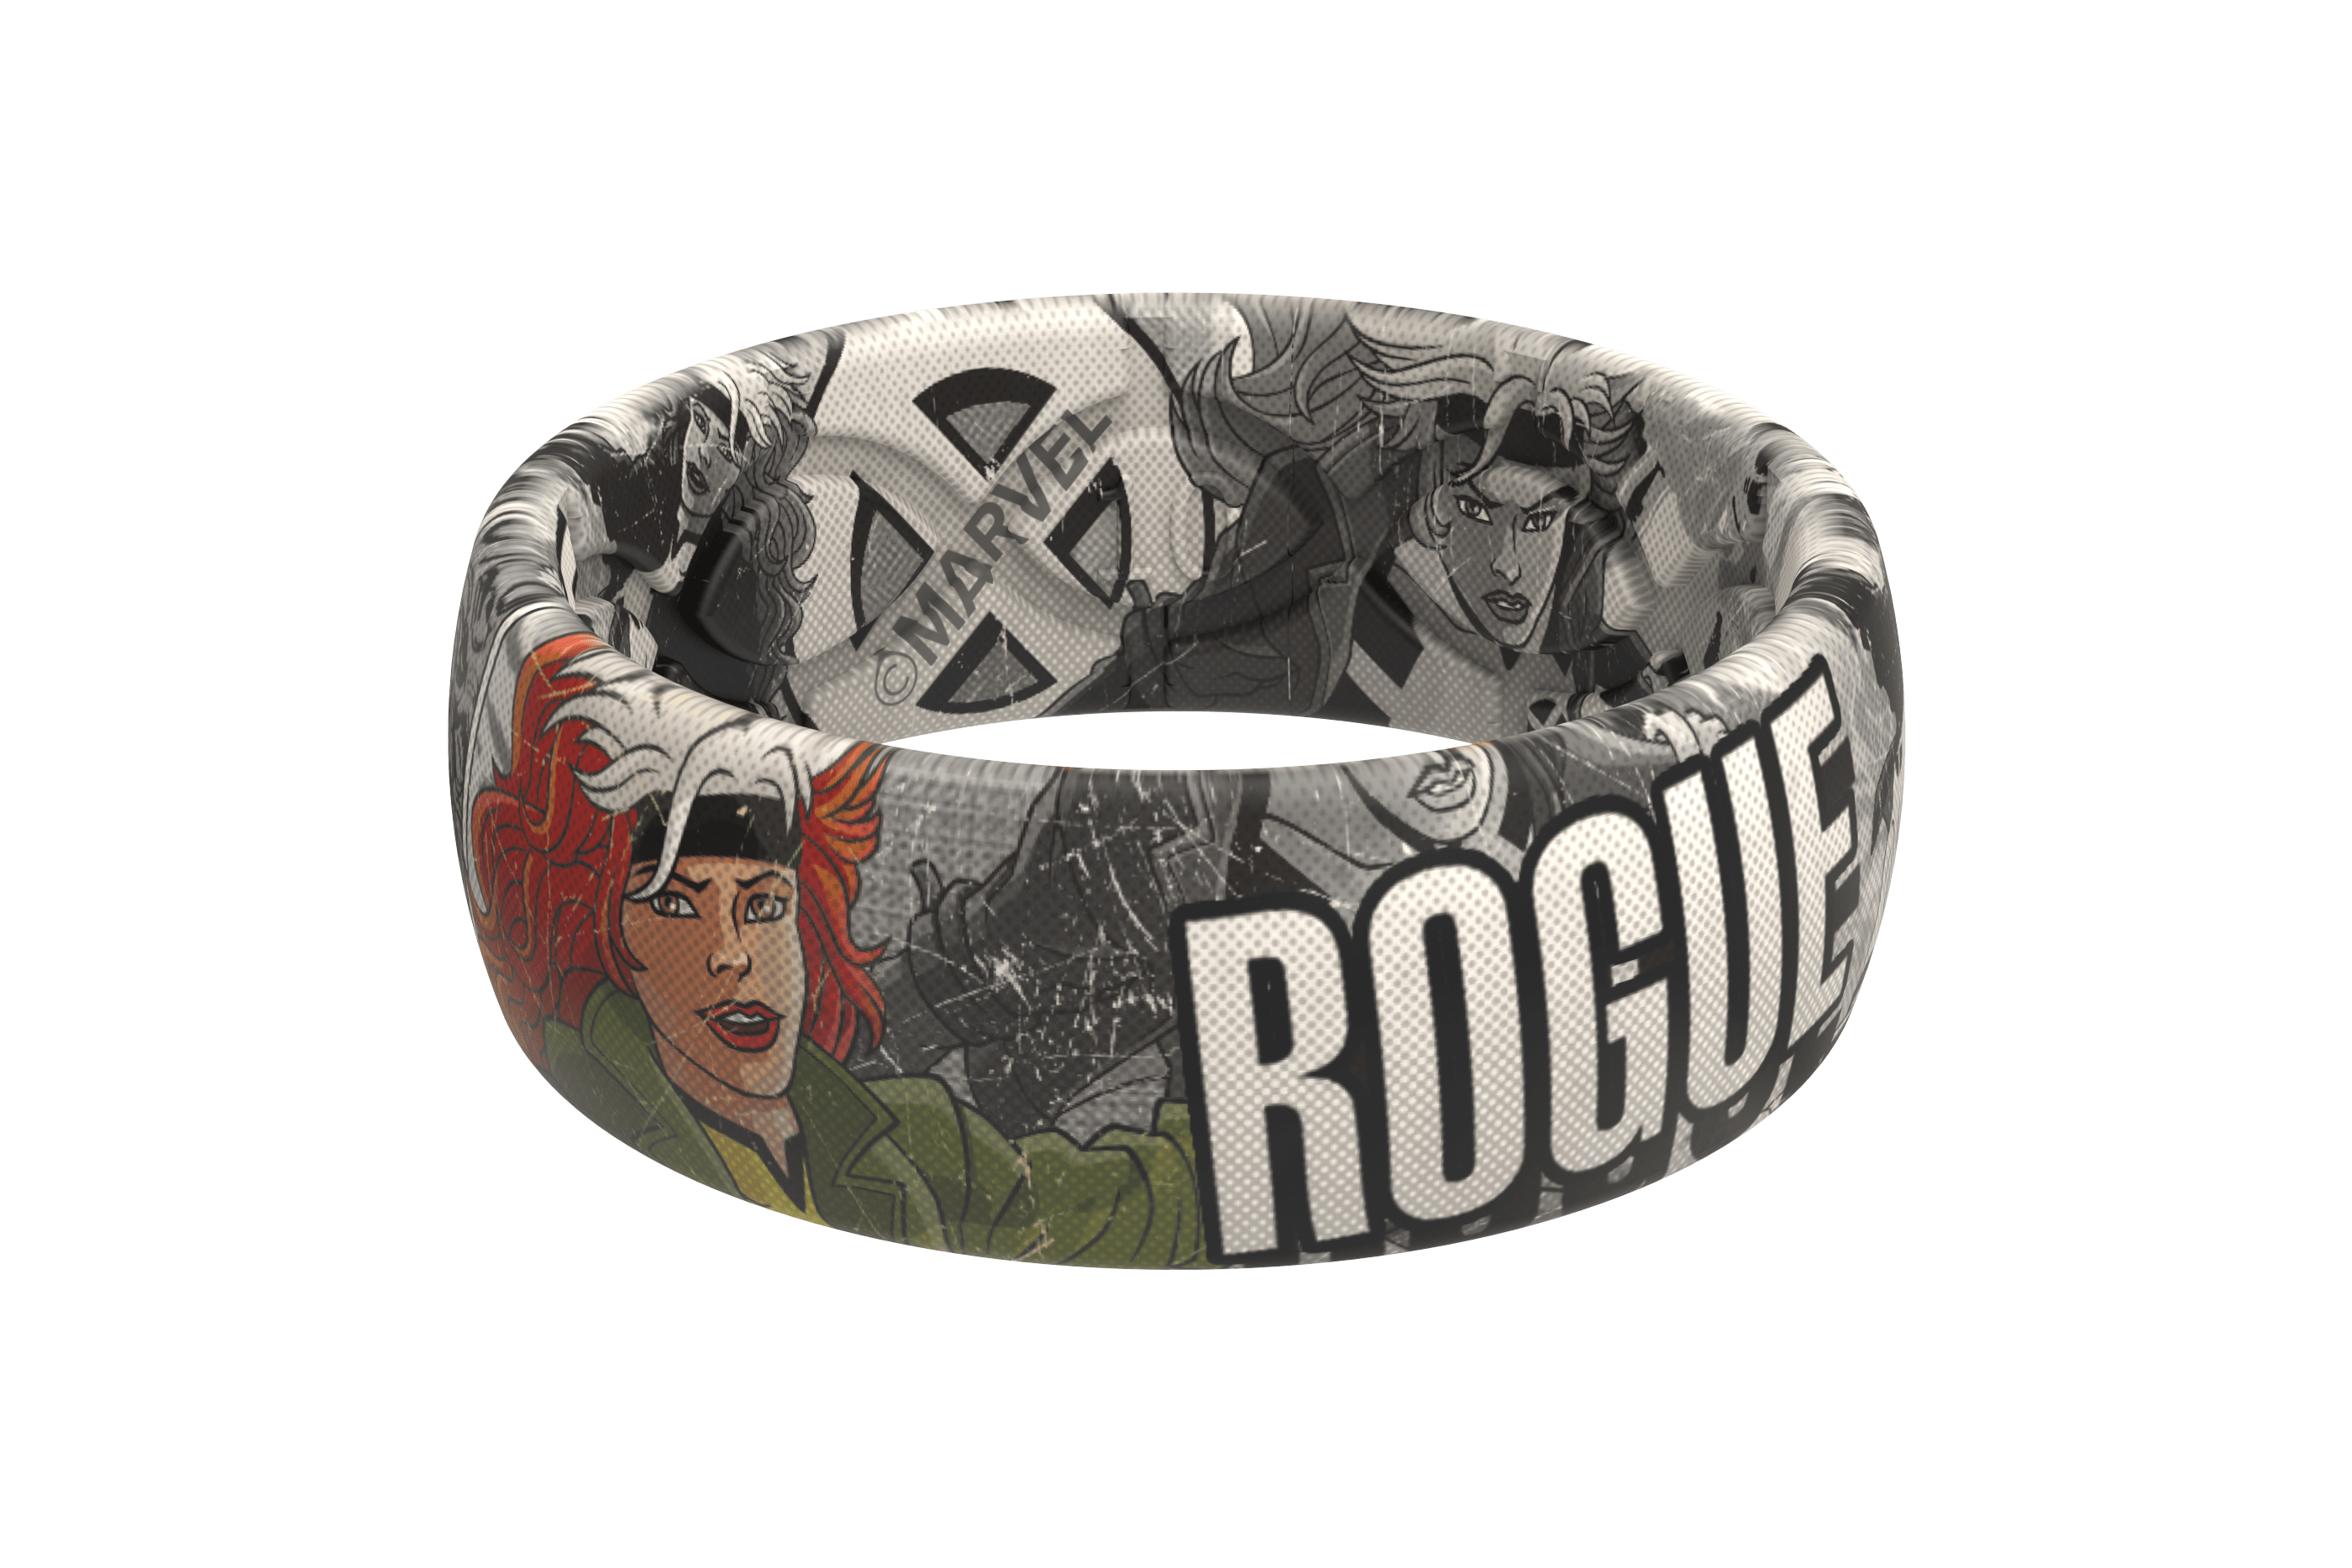 Rogue Black and White Comic Ring   Groove Life